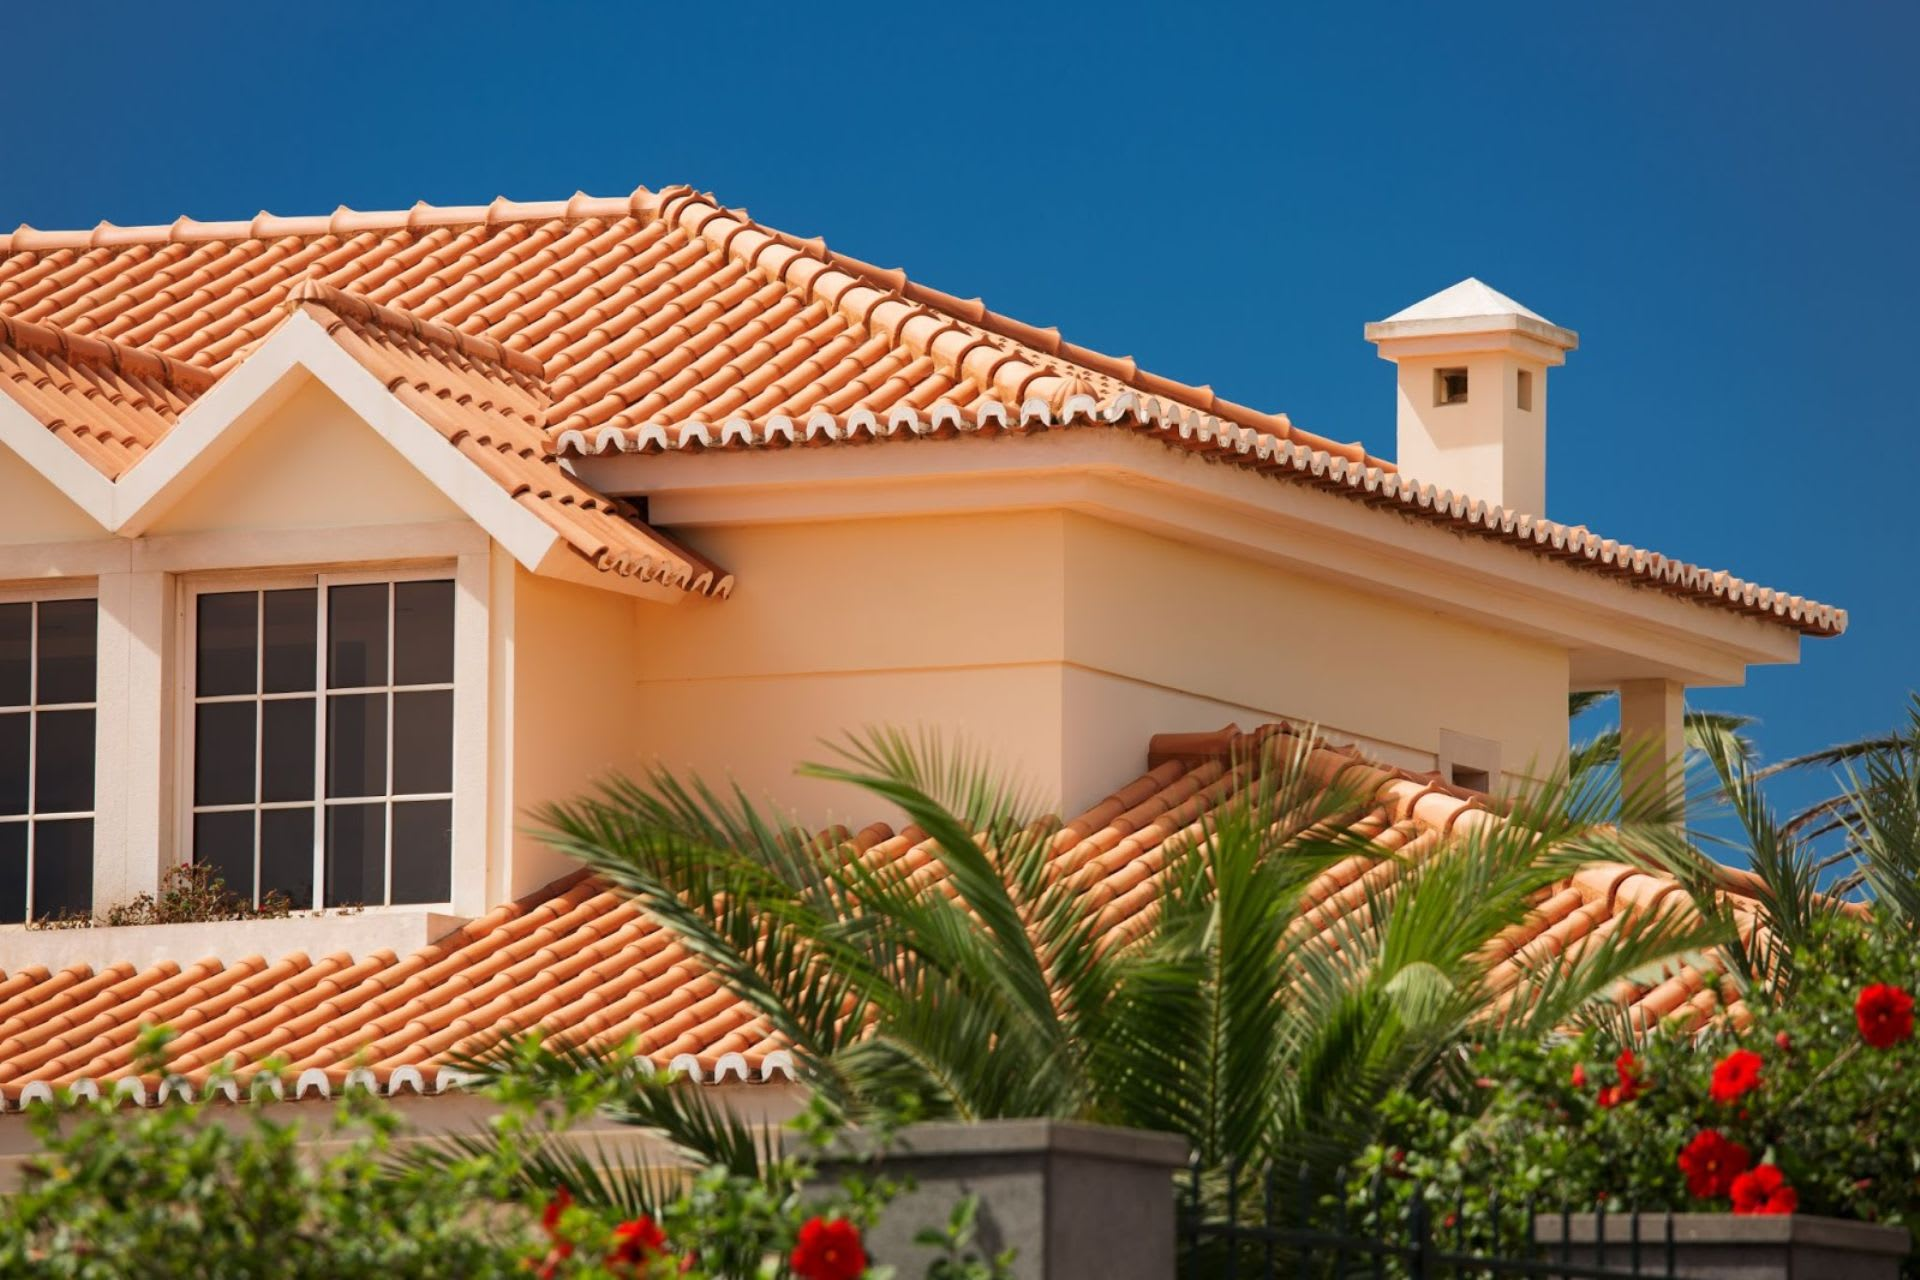 Choosing the Right Roof Tiles for Your Home